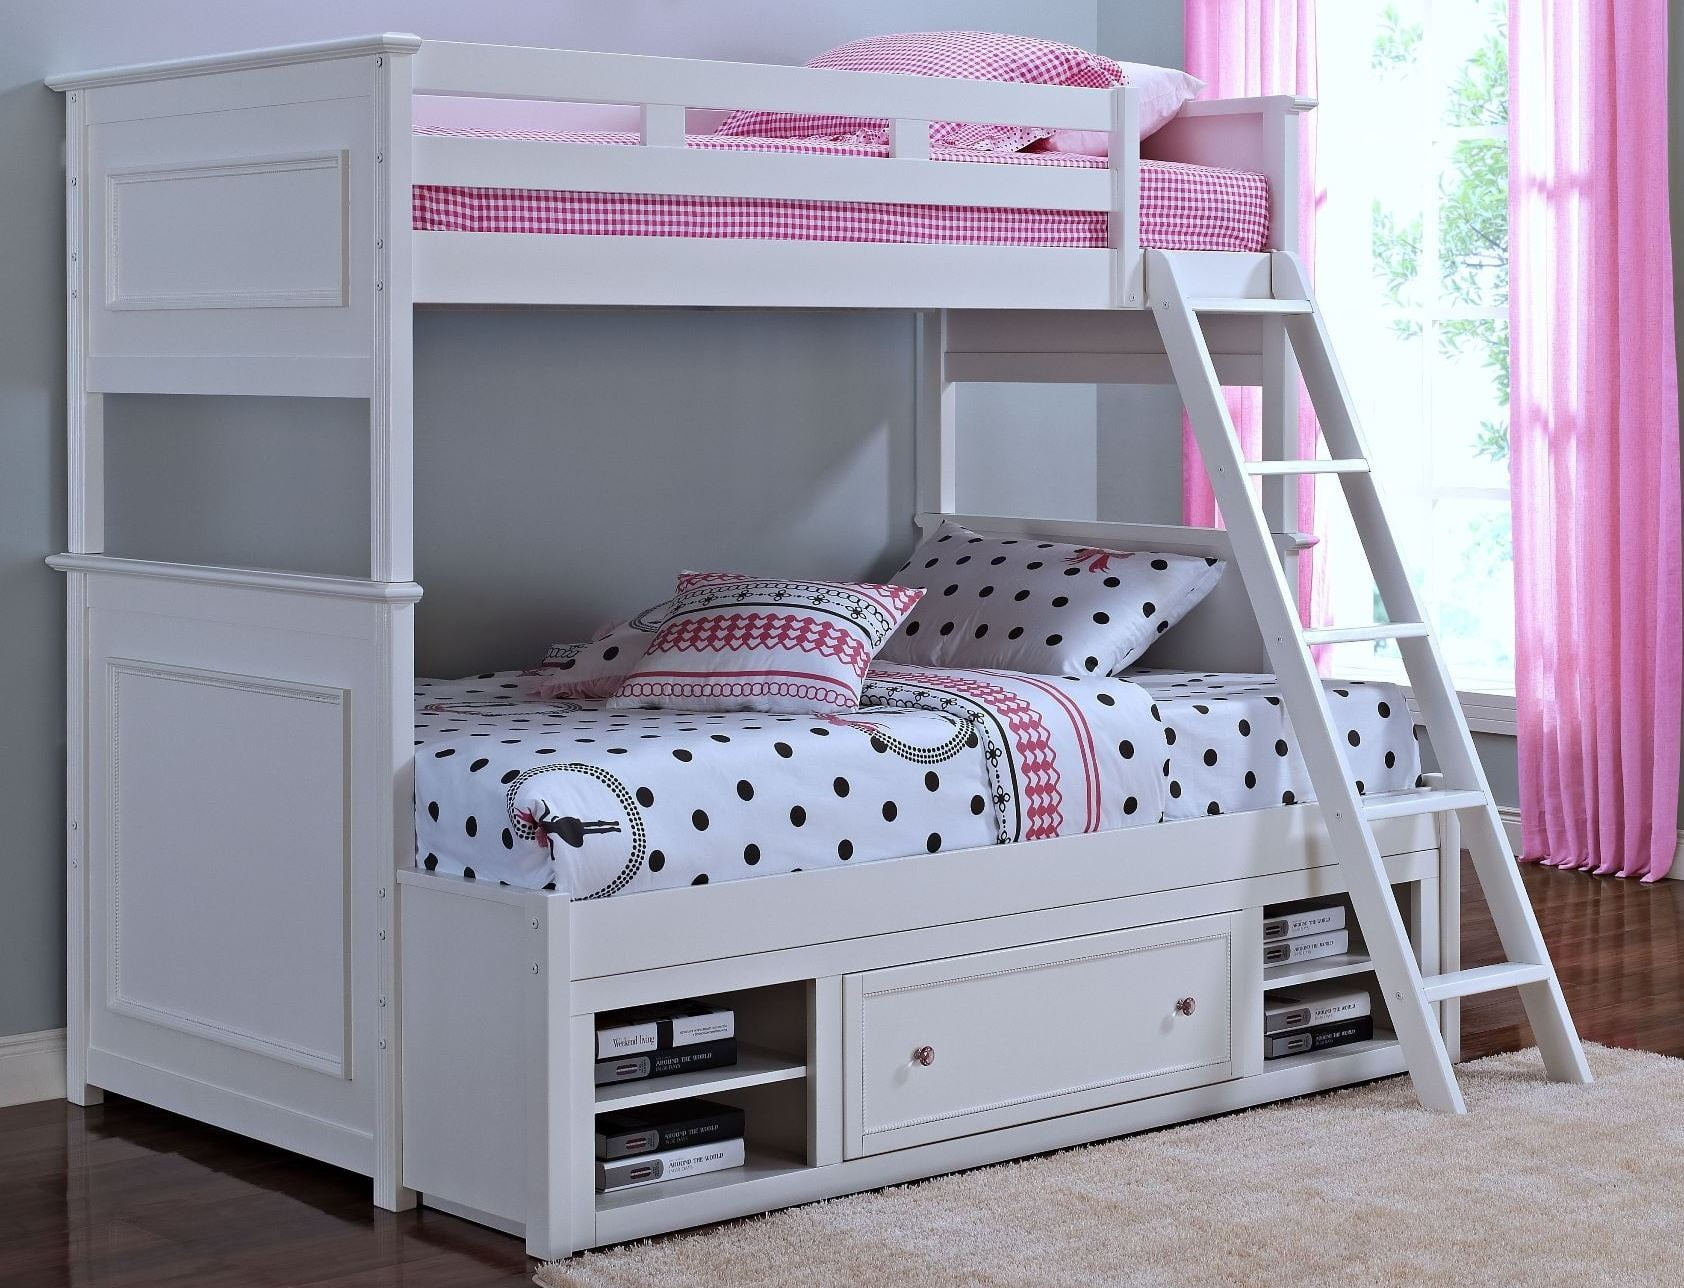 megan youth white twin over twin storage bunk bed from new classics 05 242 518 538 598. Black Bedroom Furniture Sets. Home Design Ideas